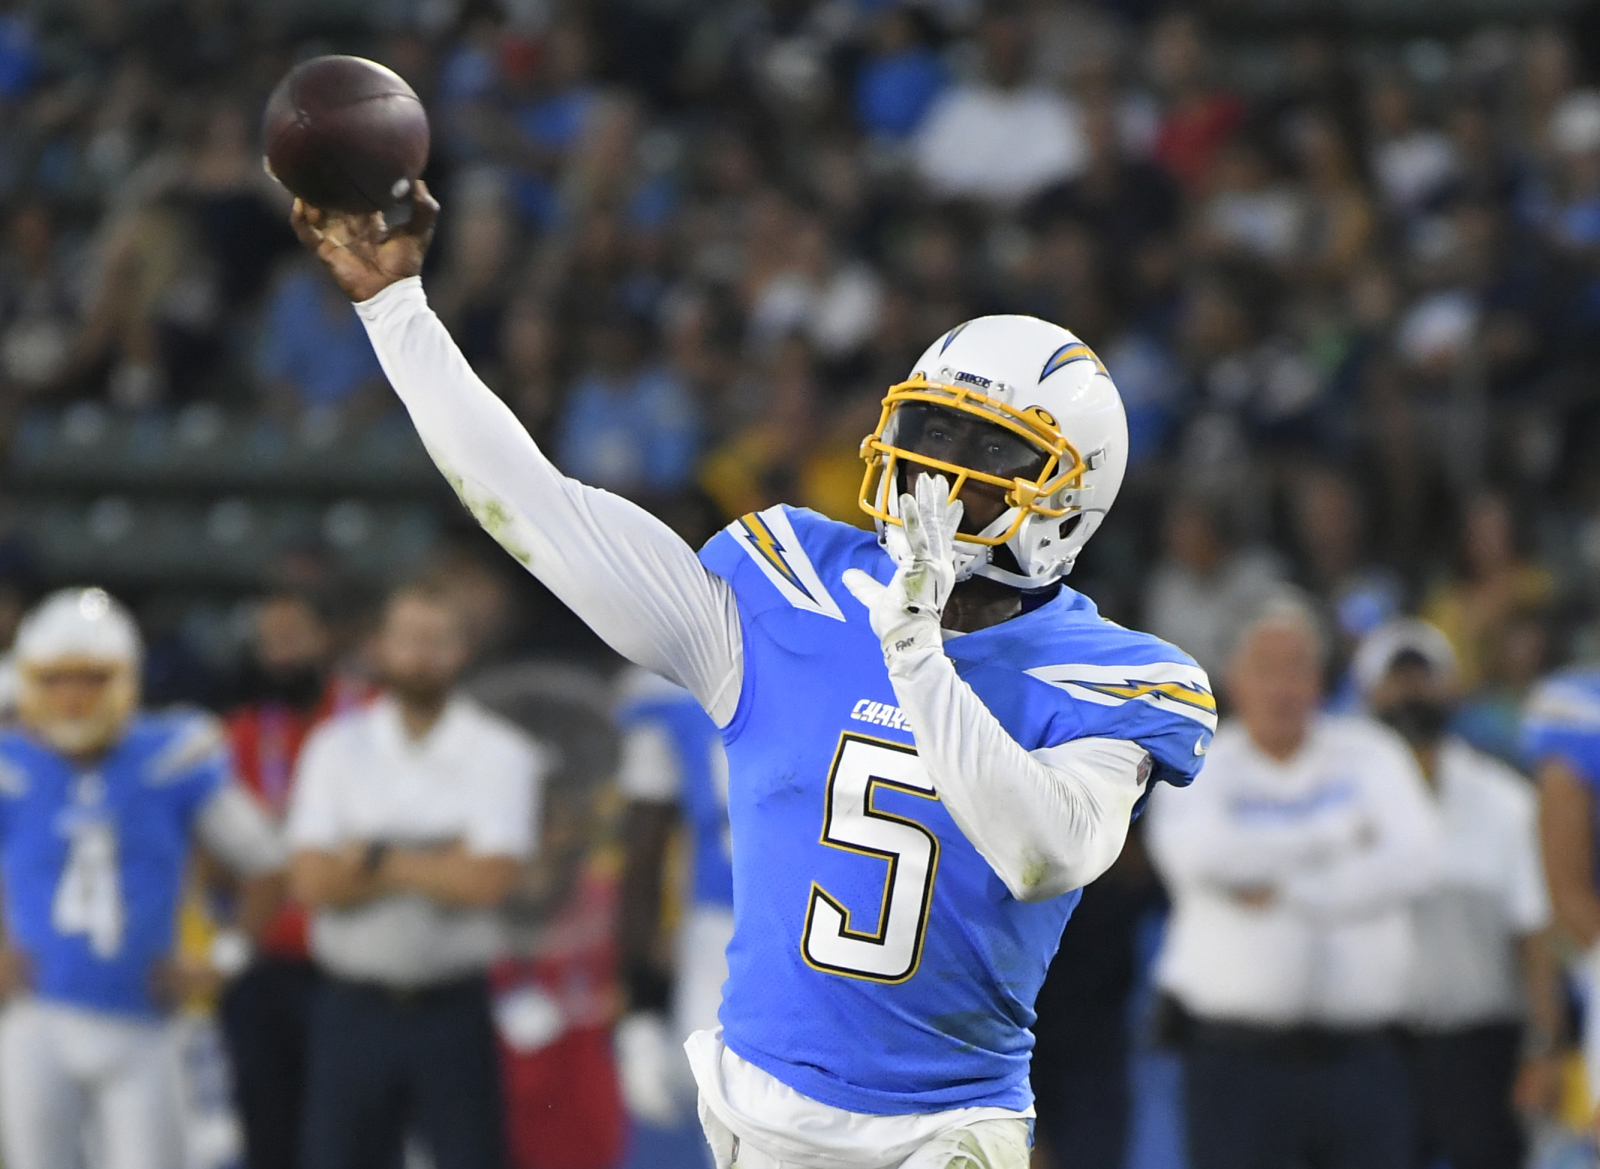 Los Angeles Chargers still solid at quarterback after Philip Rivers departure